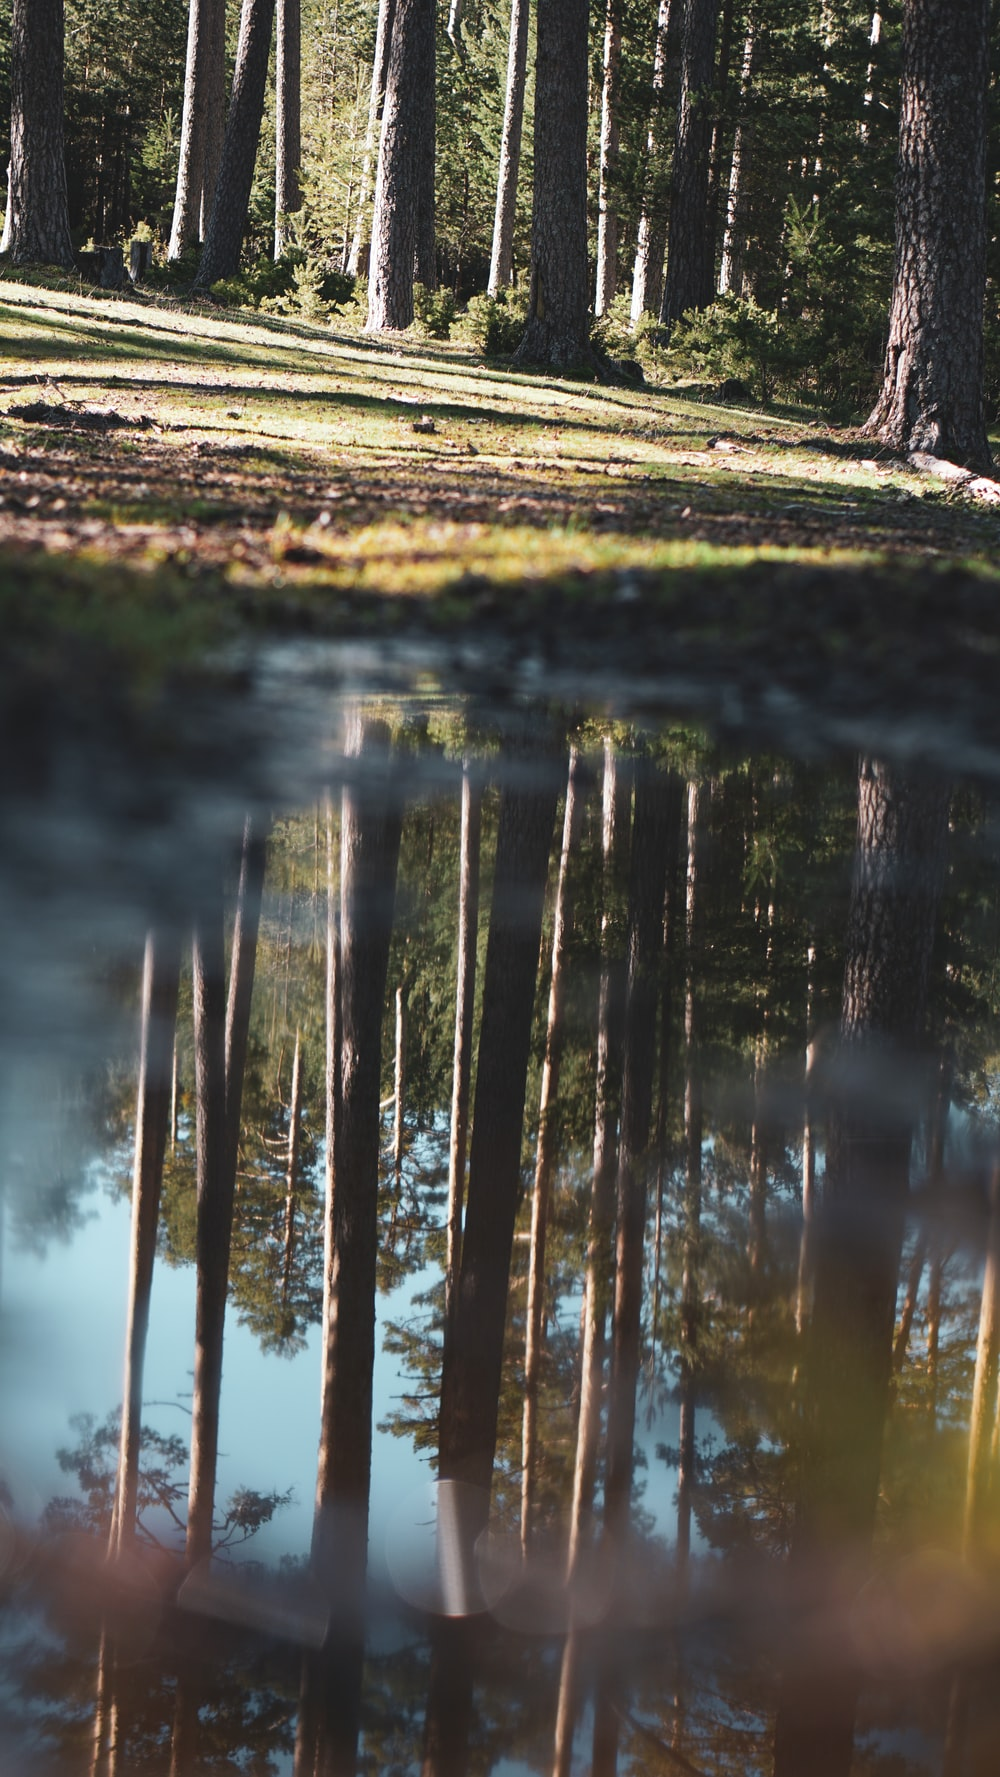 brown wooden fence on green grass near body of water during daytime